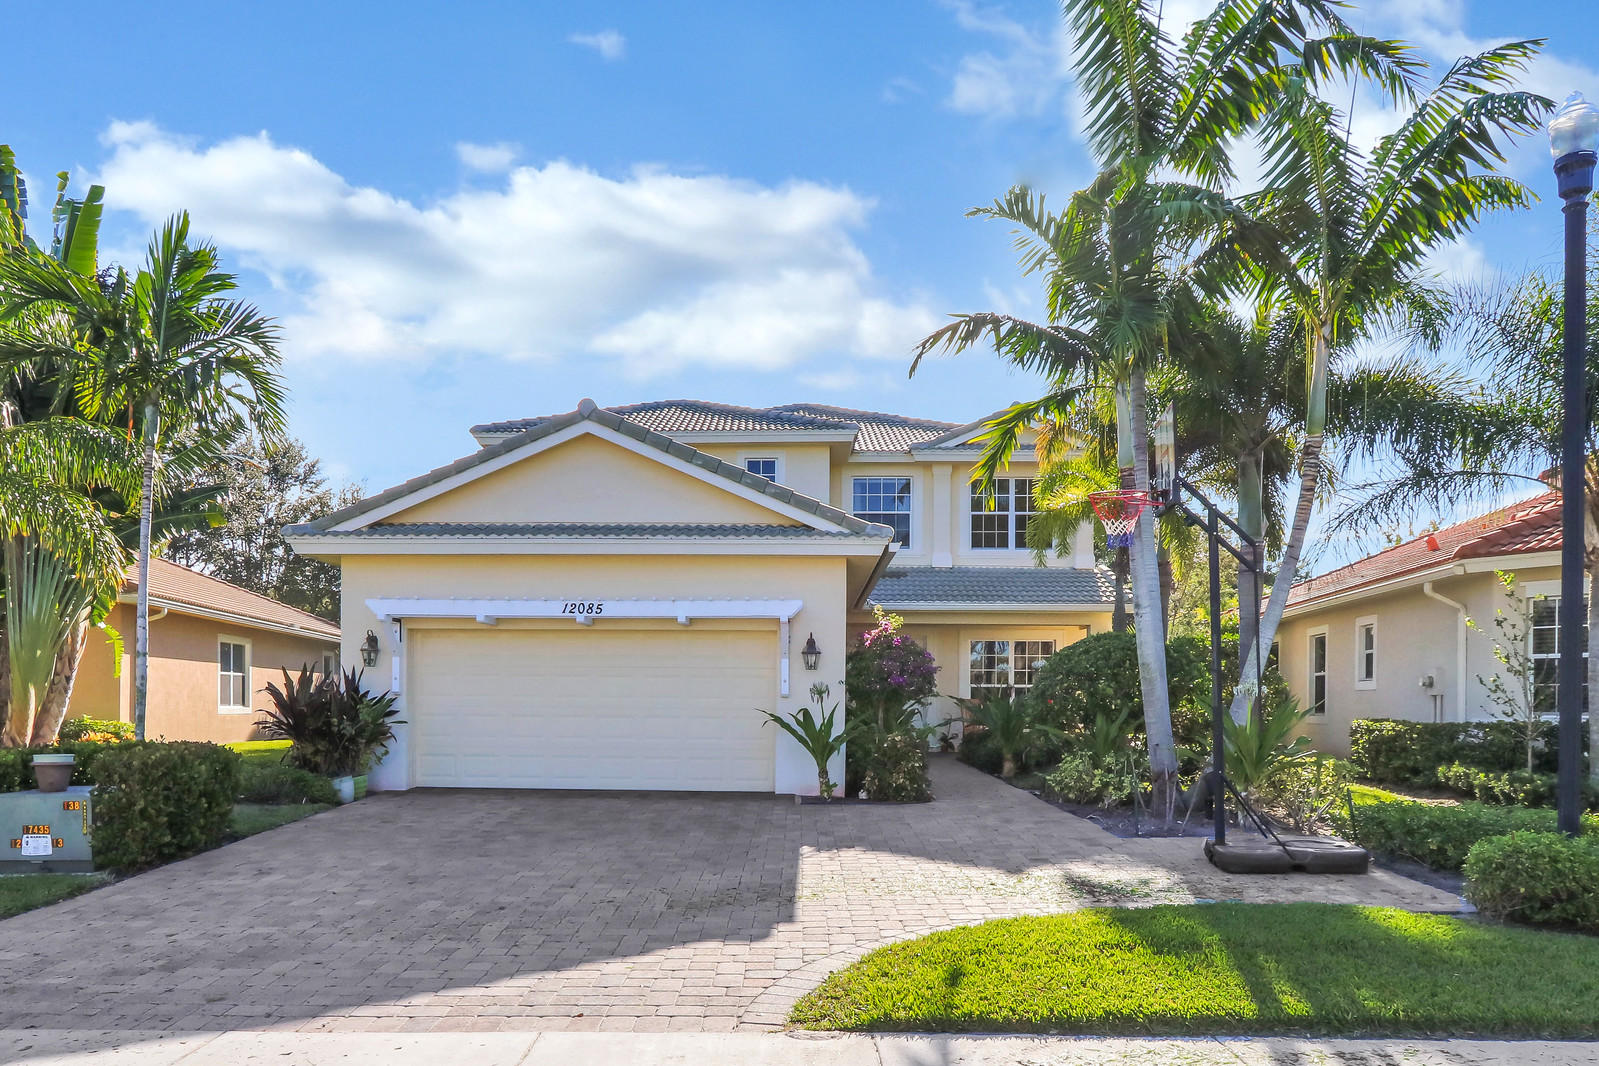 New Home for sale at 12085 Aviles Circle in Palm Beach Gardens